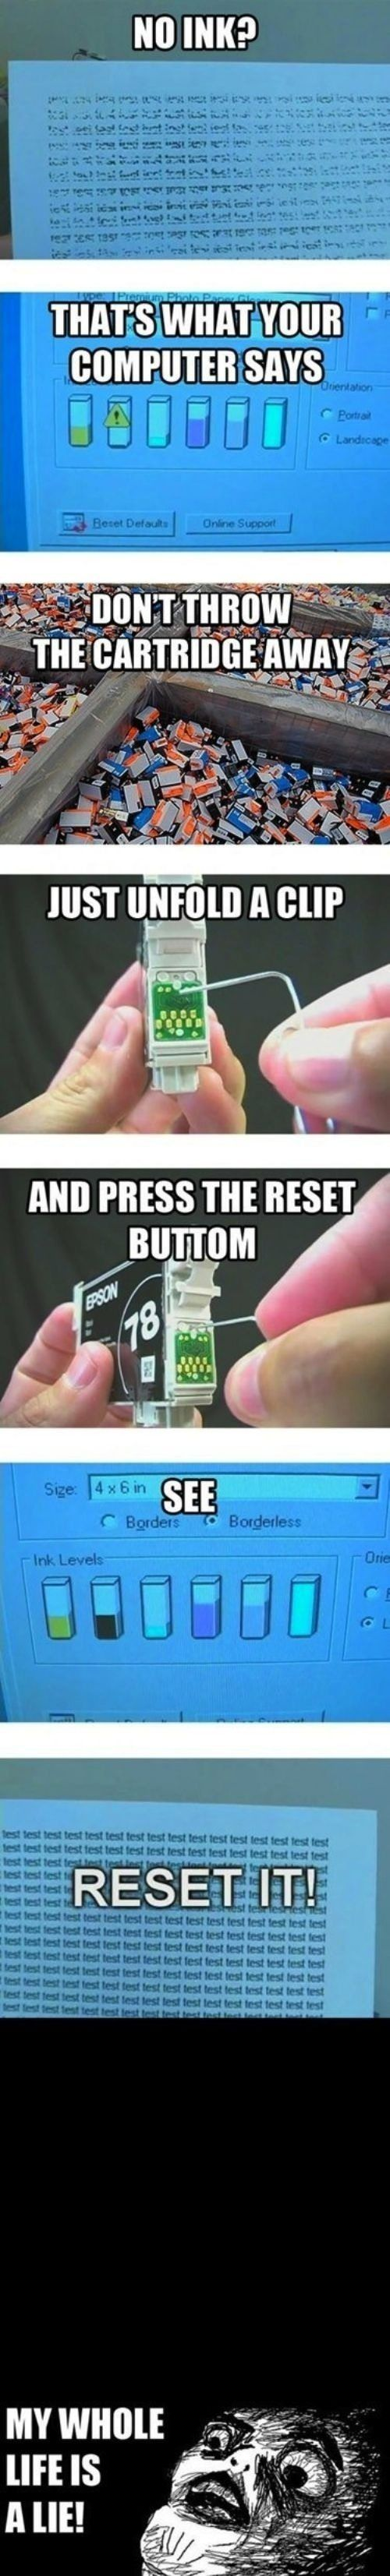 30 amazing life hacks worth giving a shot (30 Photos) – theCHIVE